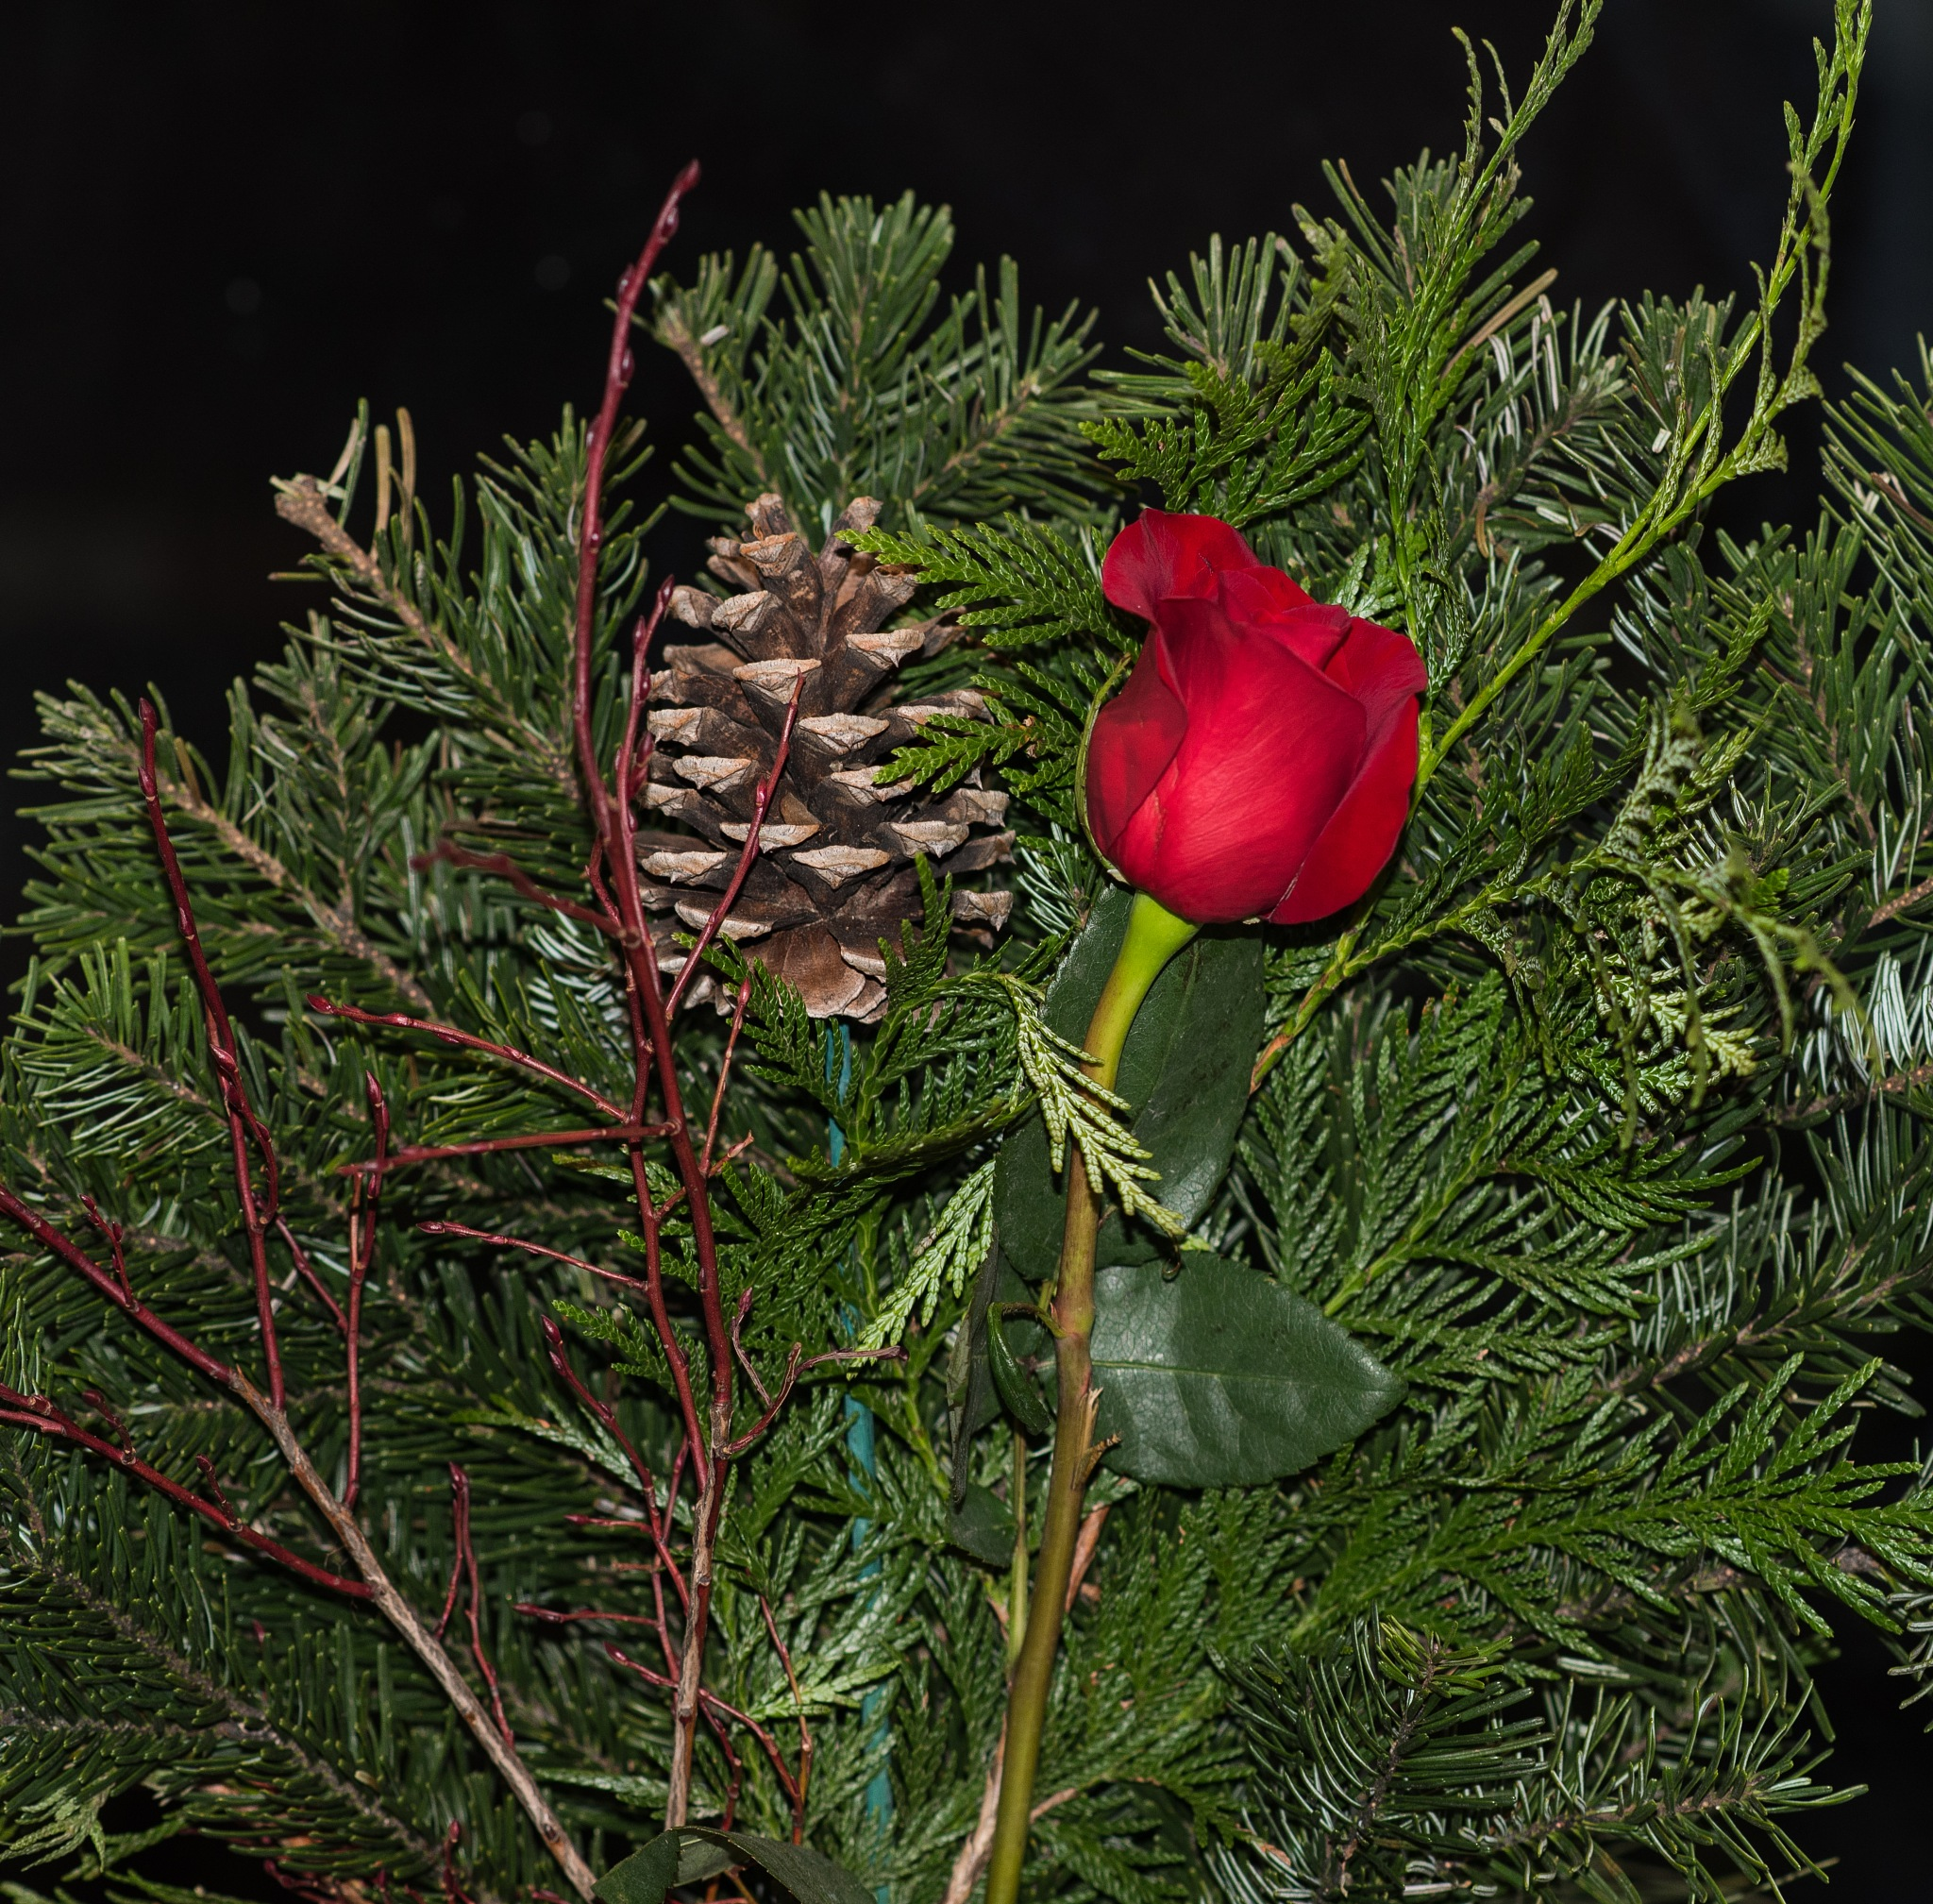 STILL LIFE: ROSE AND PINE CONE by DrJohnHodgson